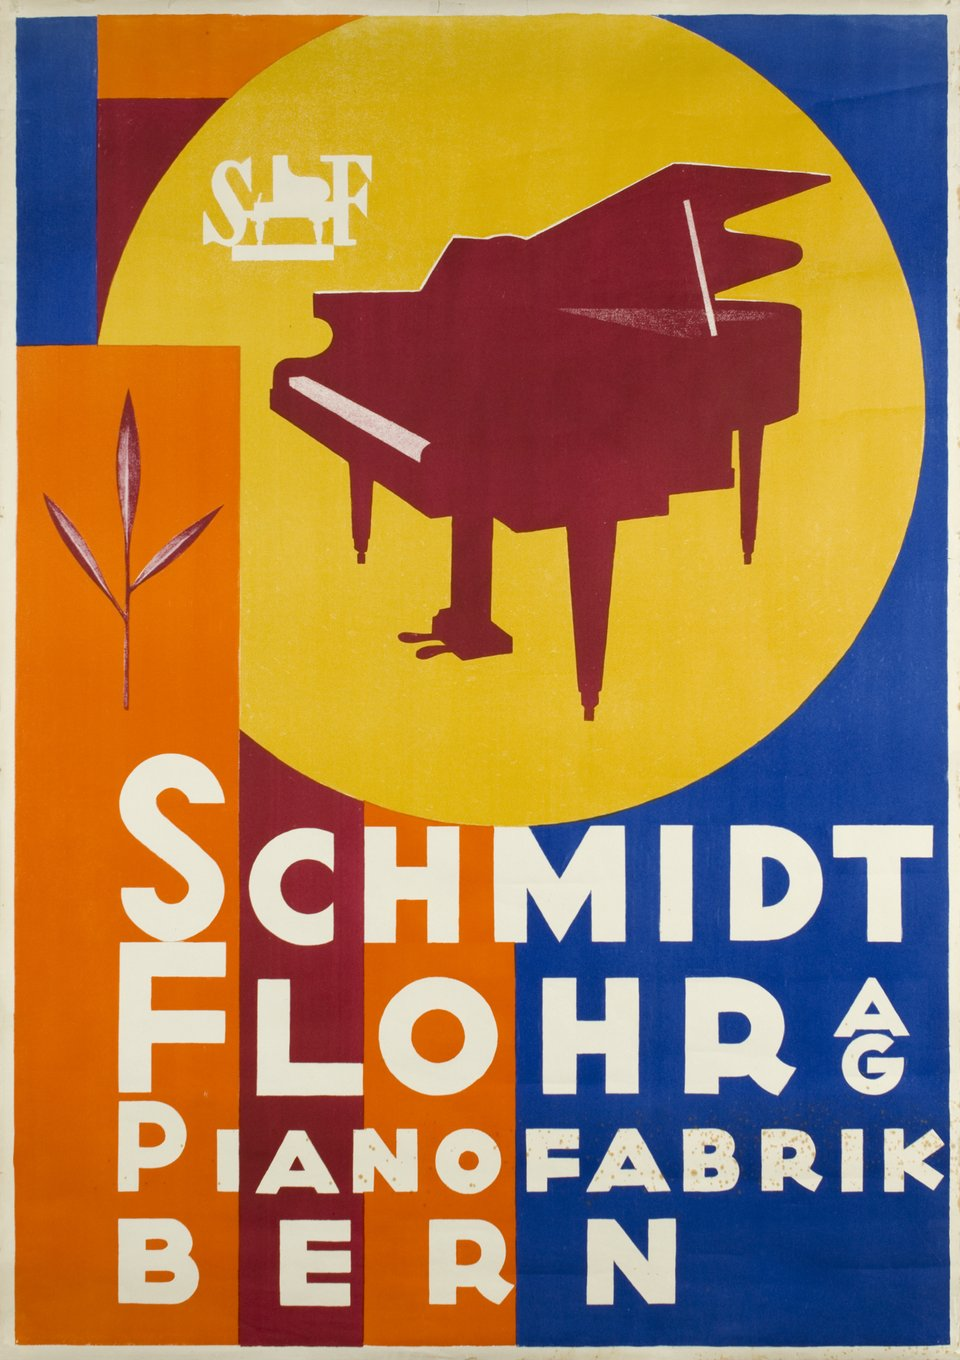 Schmidt Flohr AG - Pianofabrik Bern – Vintage poster – ANONYME – 1940